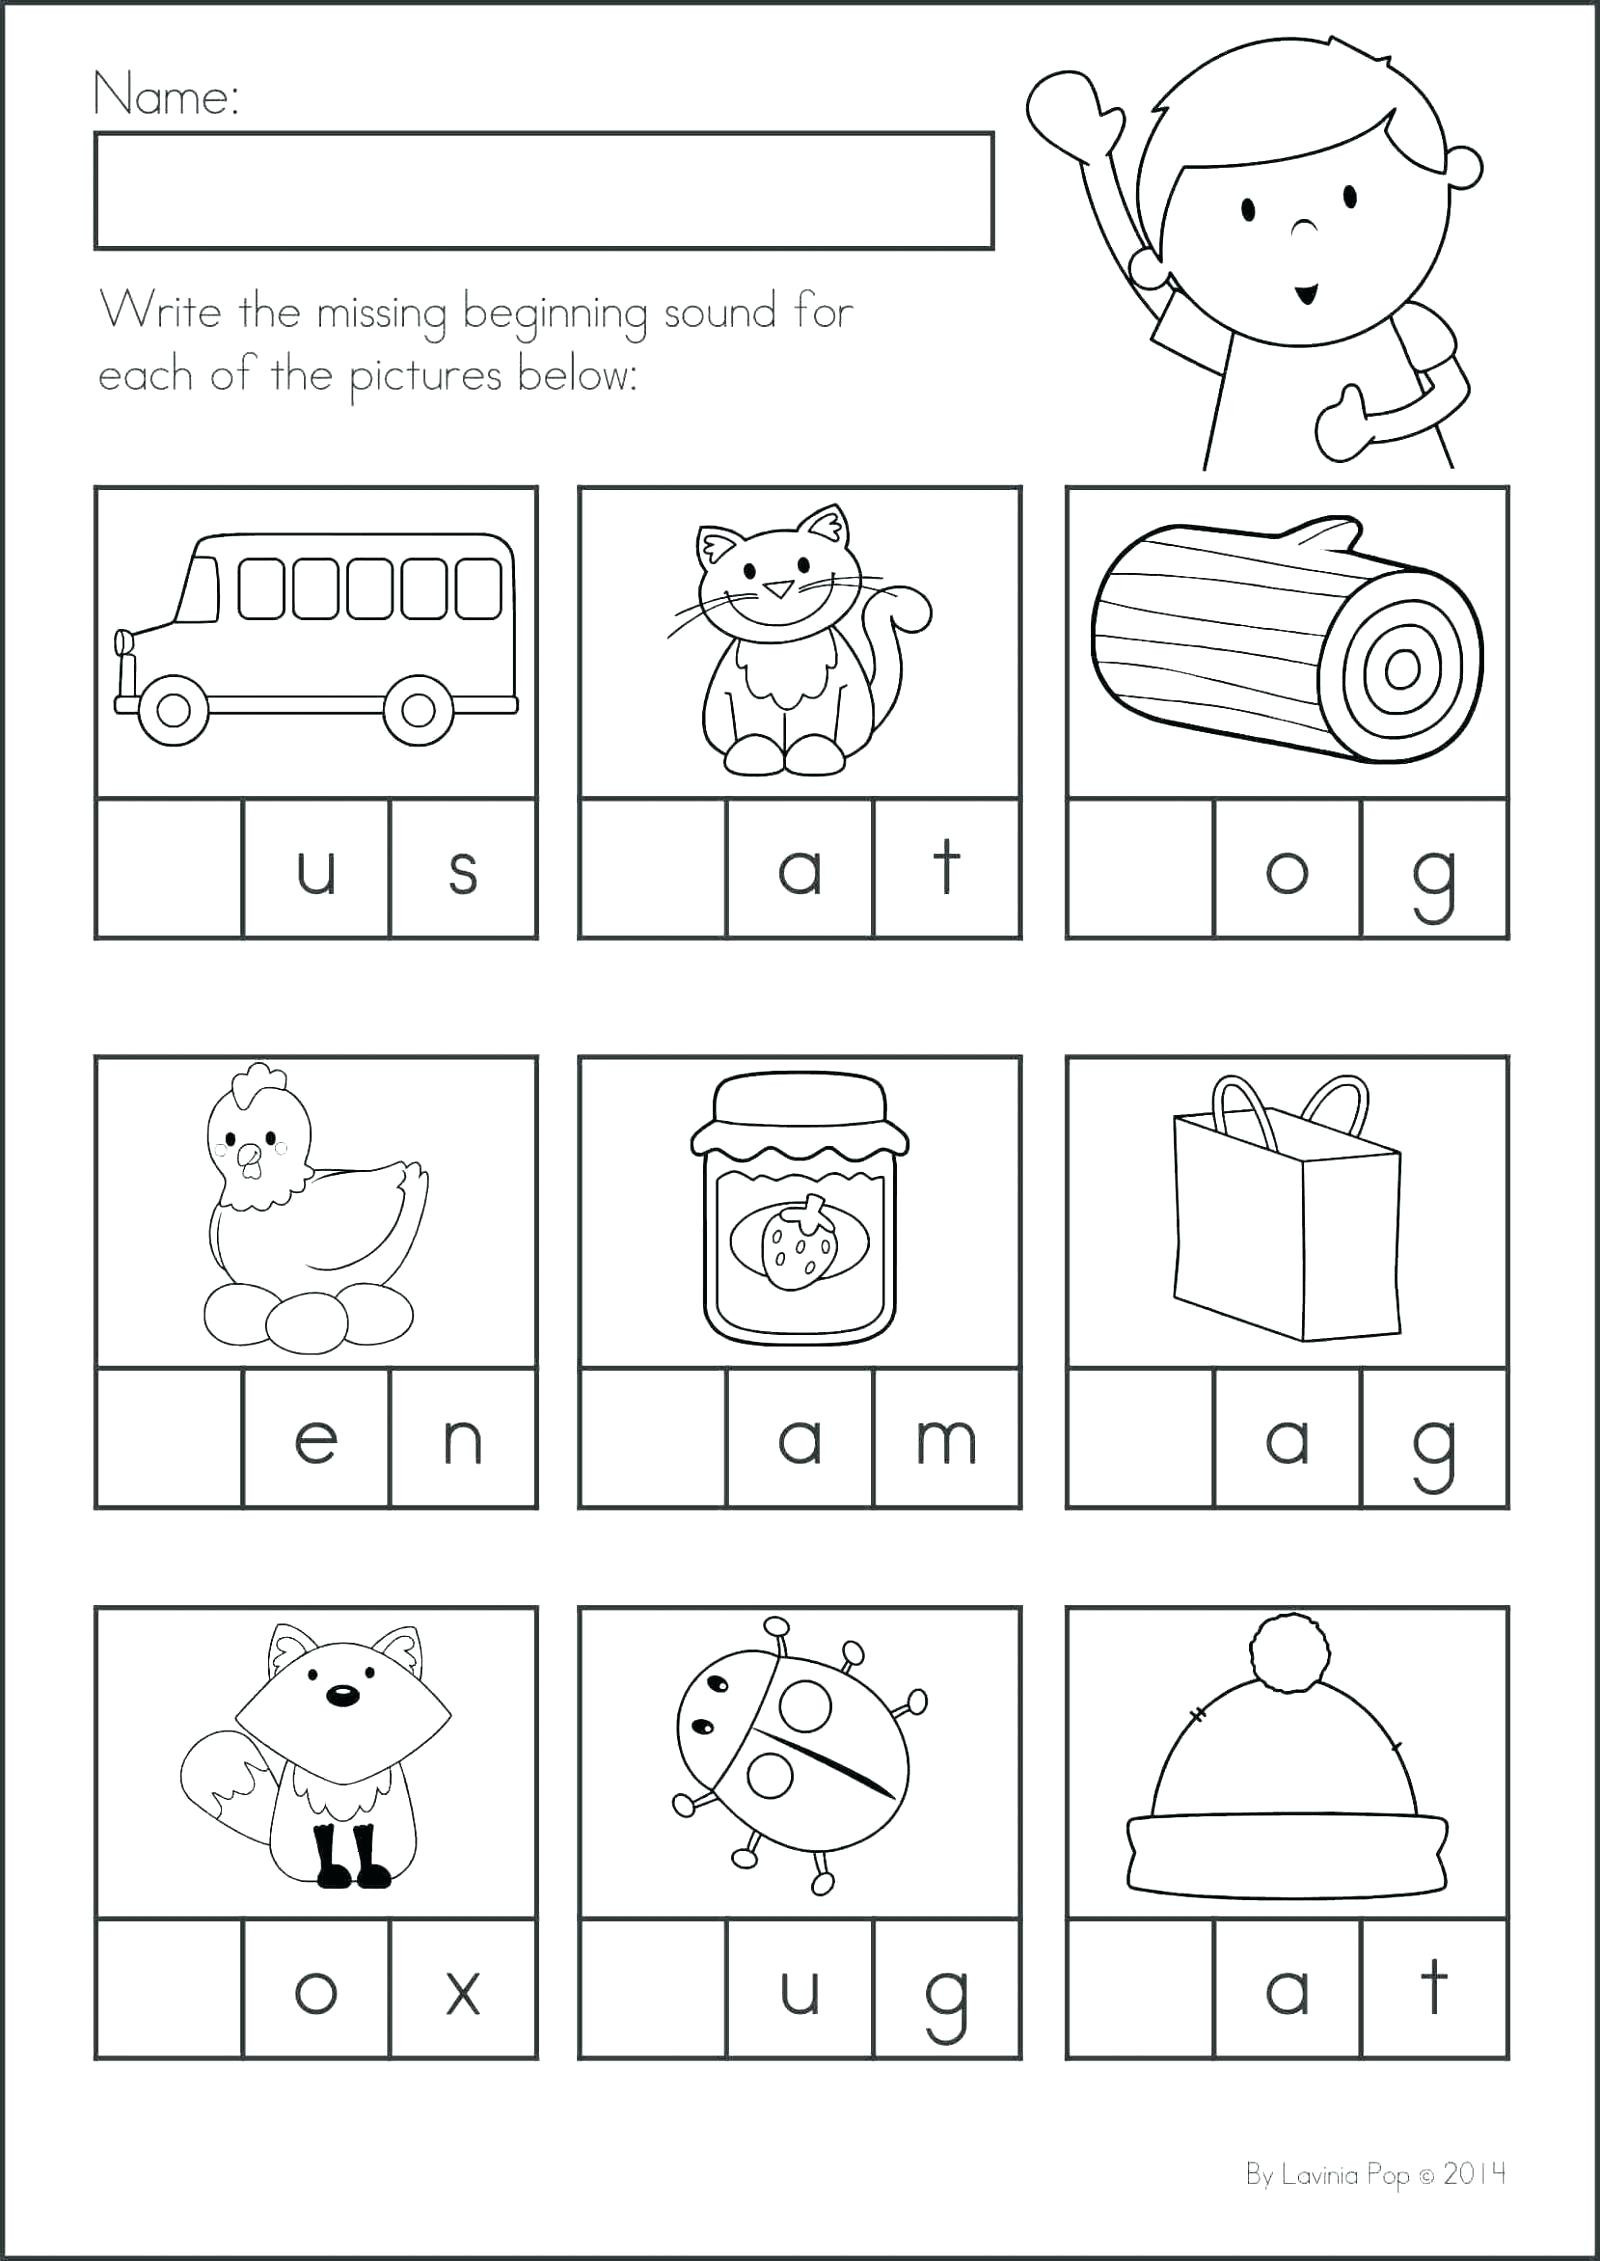 art gallery beginning phonicsrksheets oneupcolor middle sounds for kindergarten sound letter printable free alphabet preschool scripture coloring books adults sightrd mini cutouts